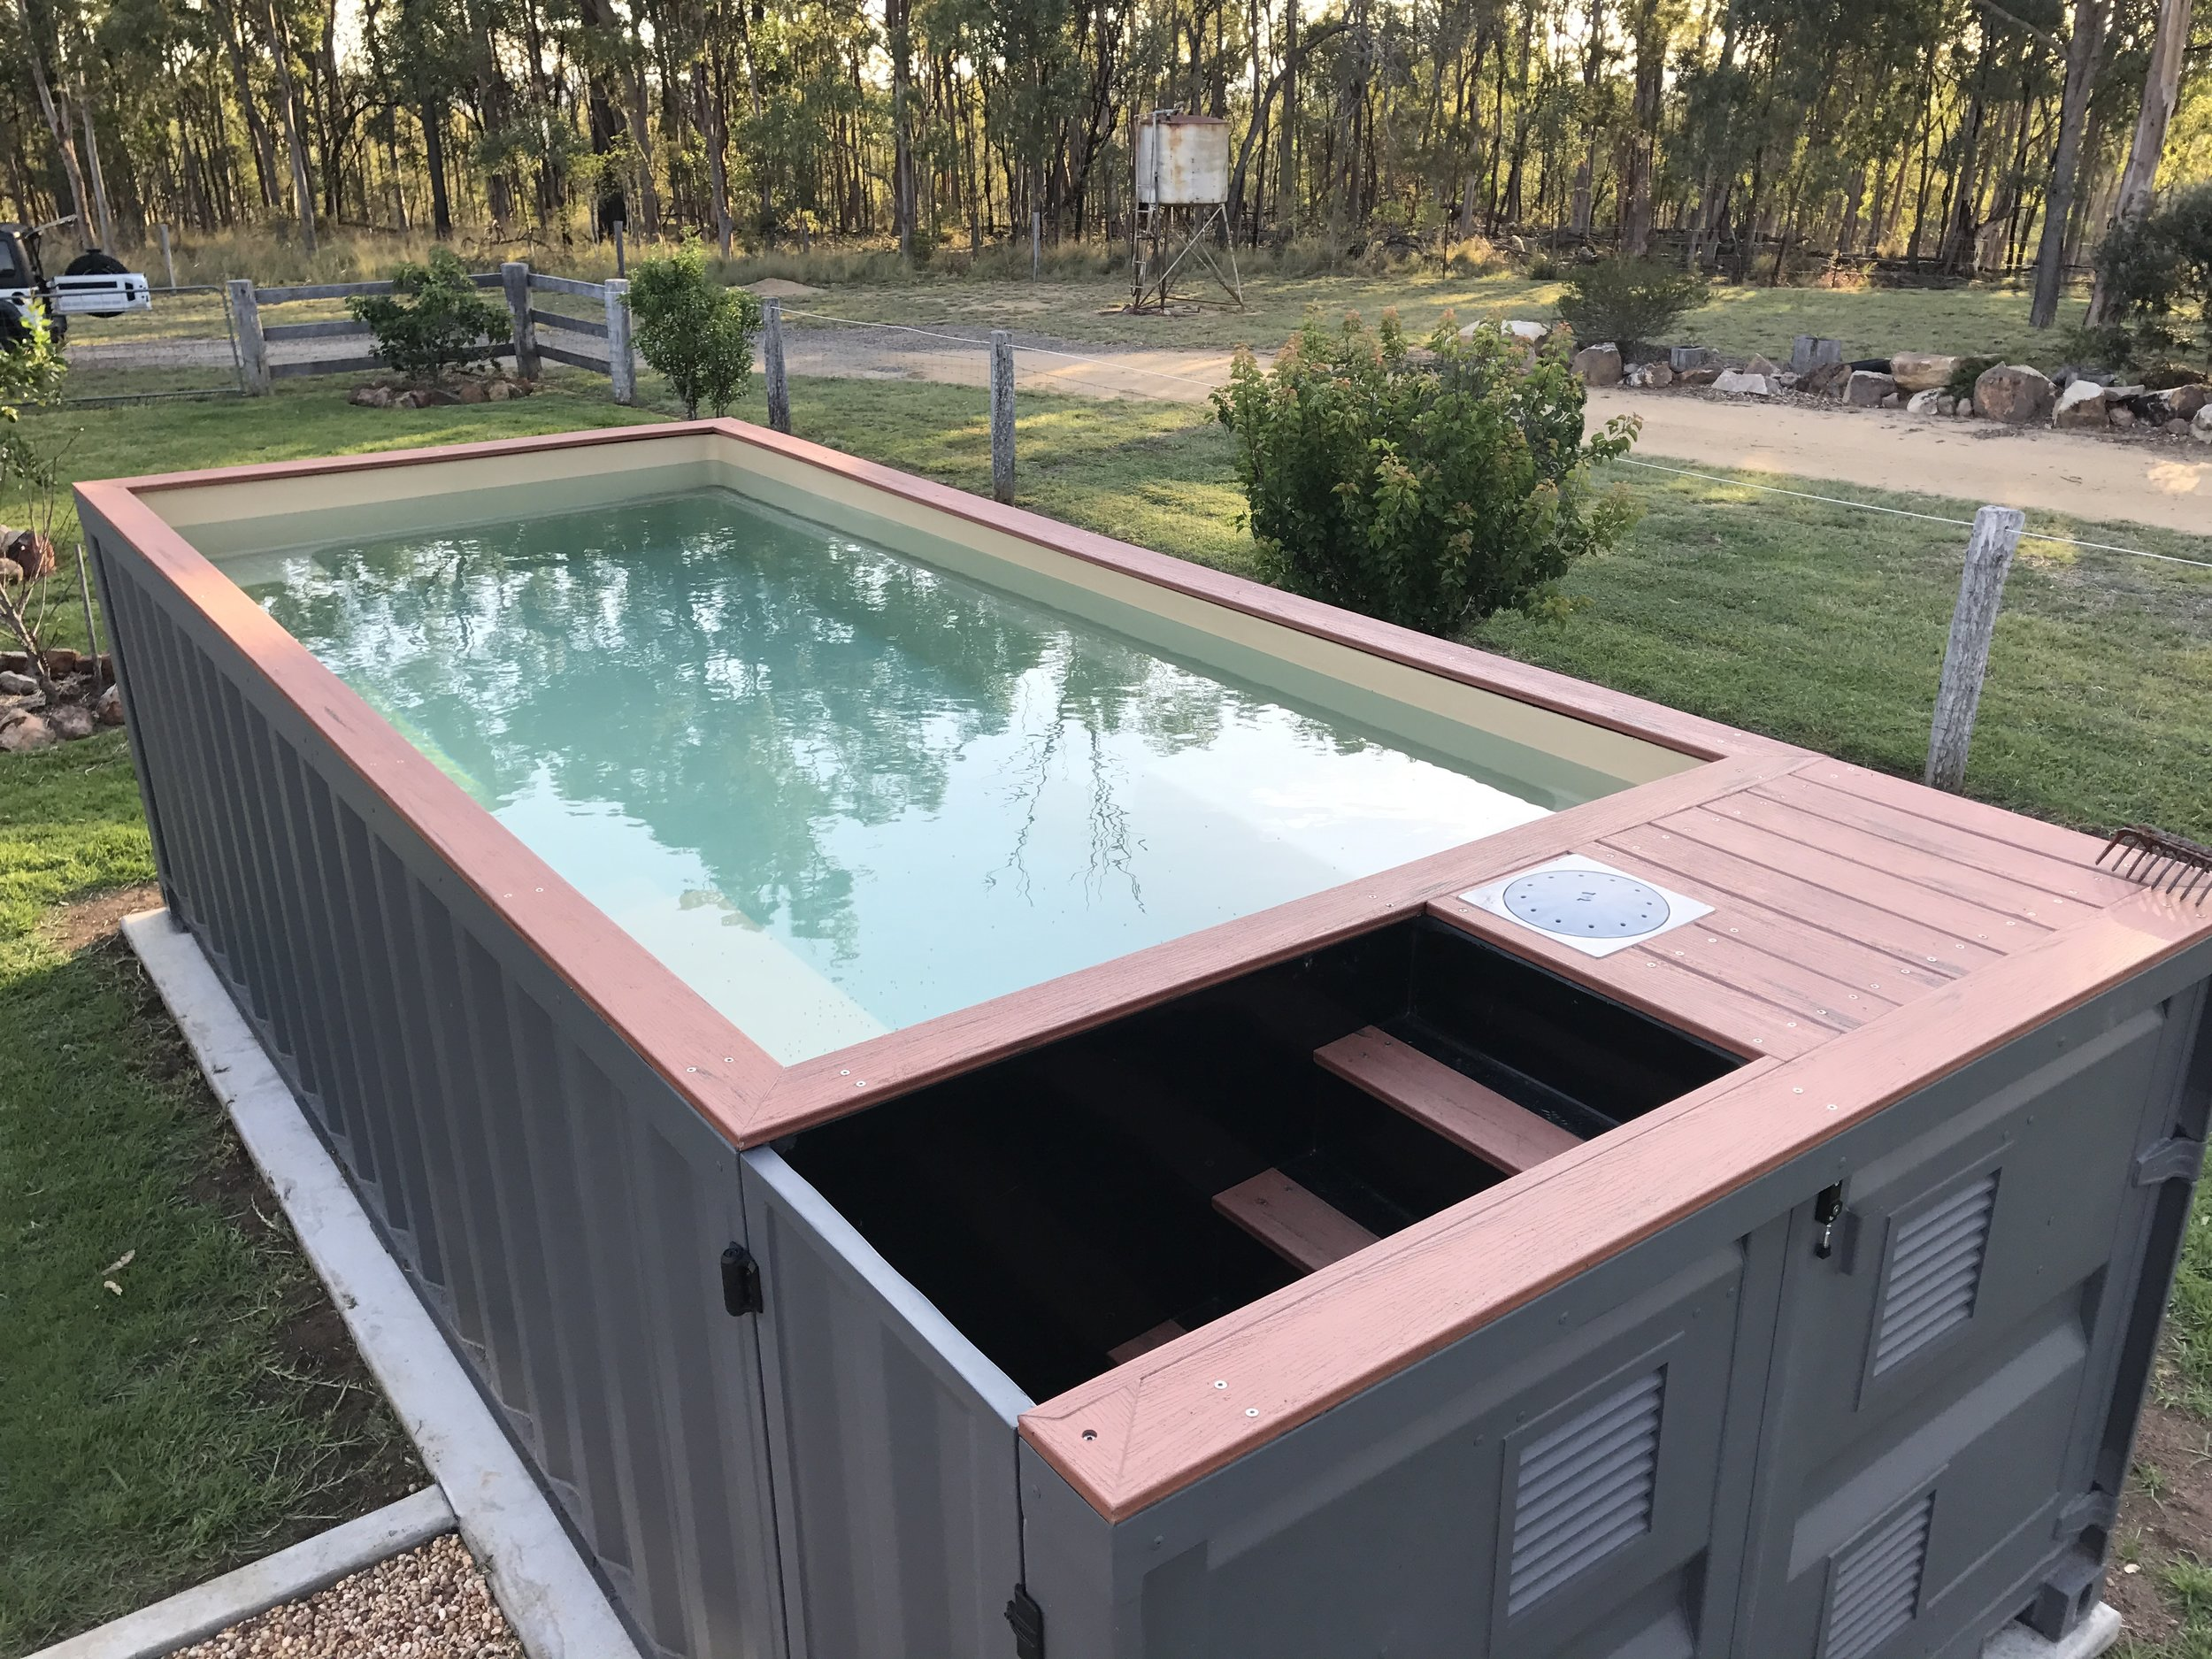 for more information on these pools click here